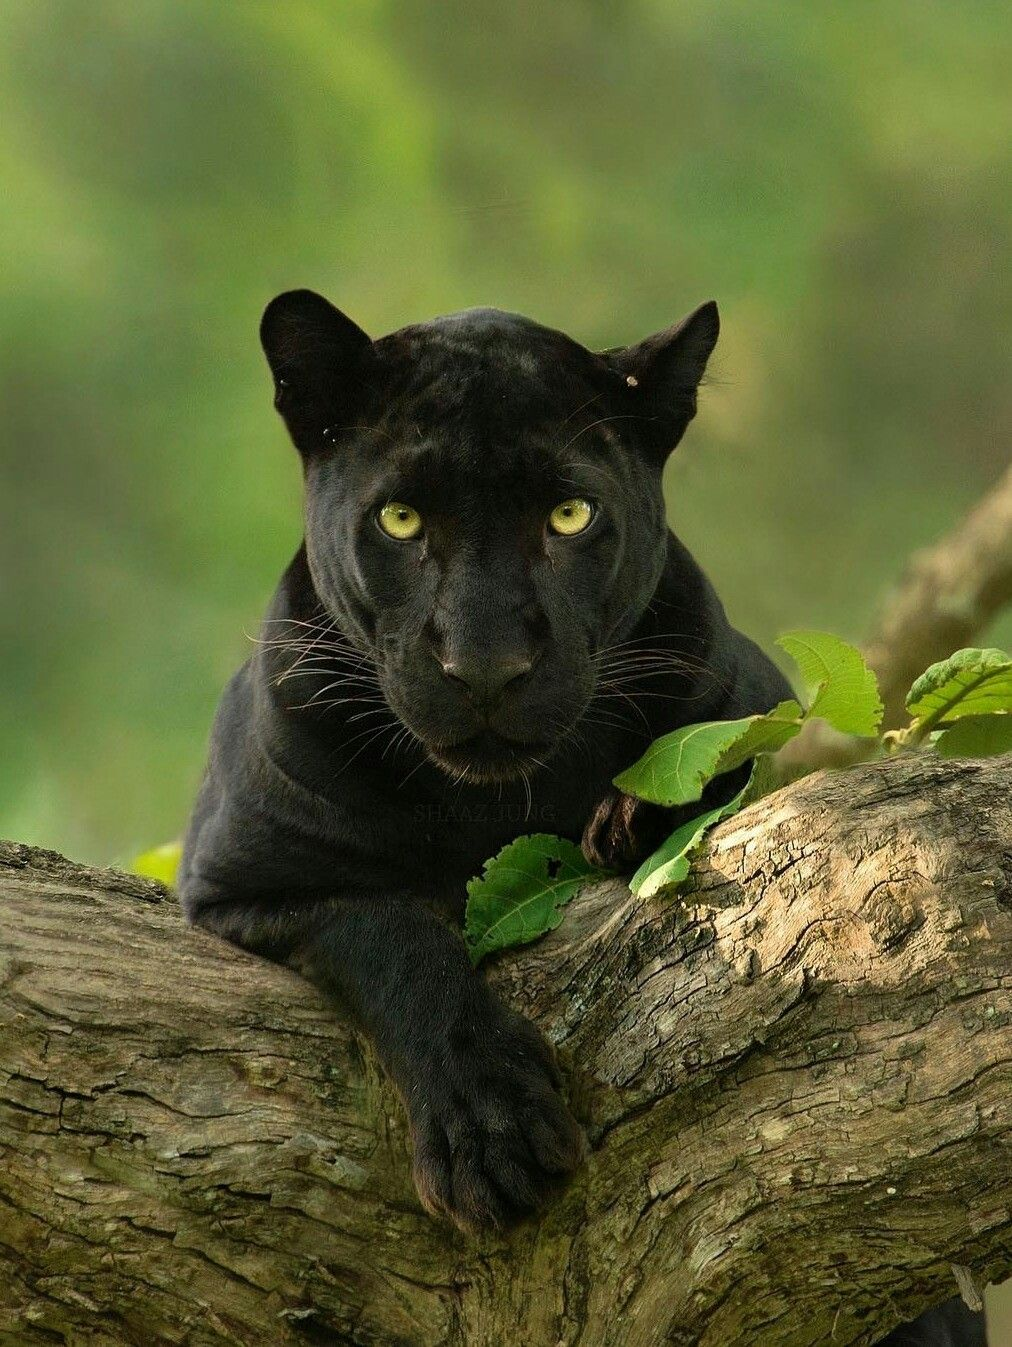 Black Panther, by shaazjungphotography From laulna.tumblr